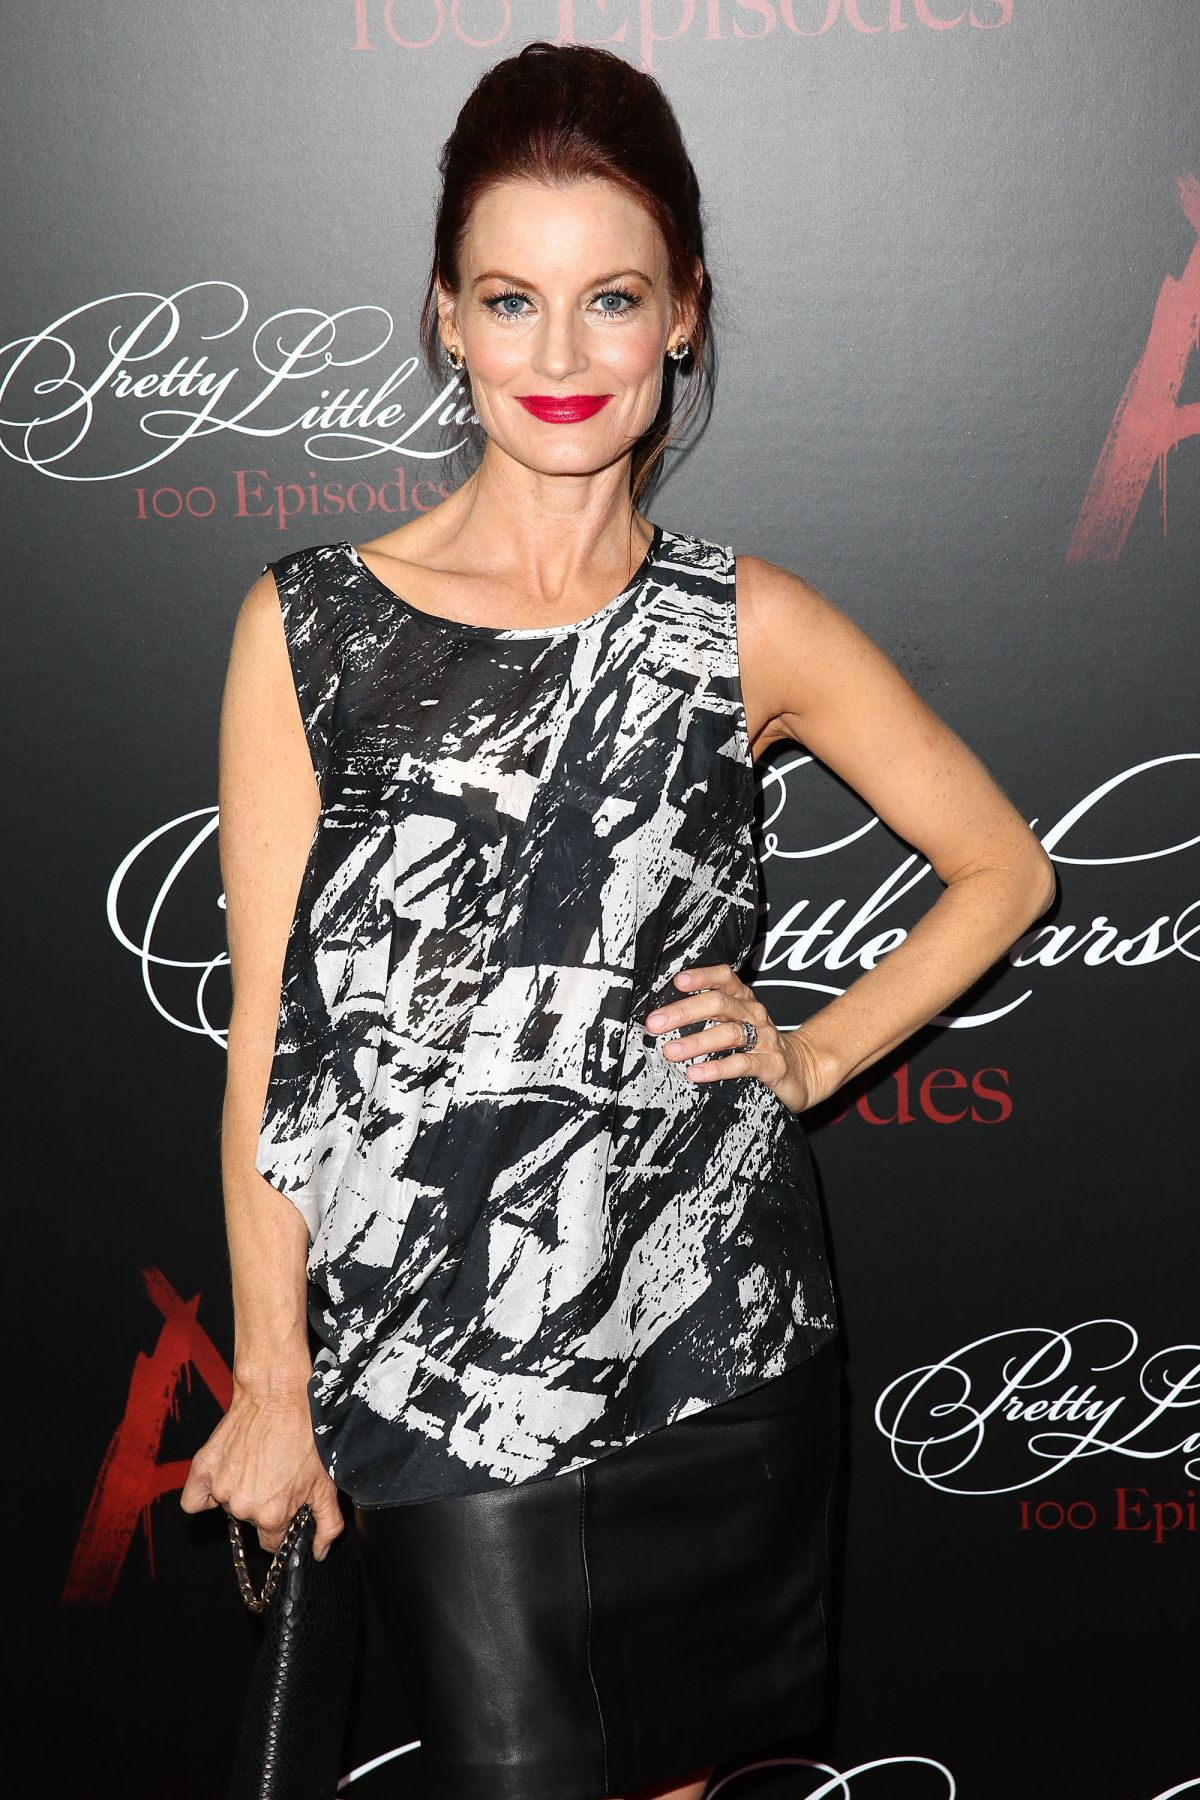 KAURA LEIGHTON at Pretty Little Liars 100th Episode Celebration in Hollywood